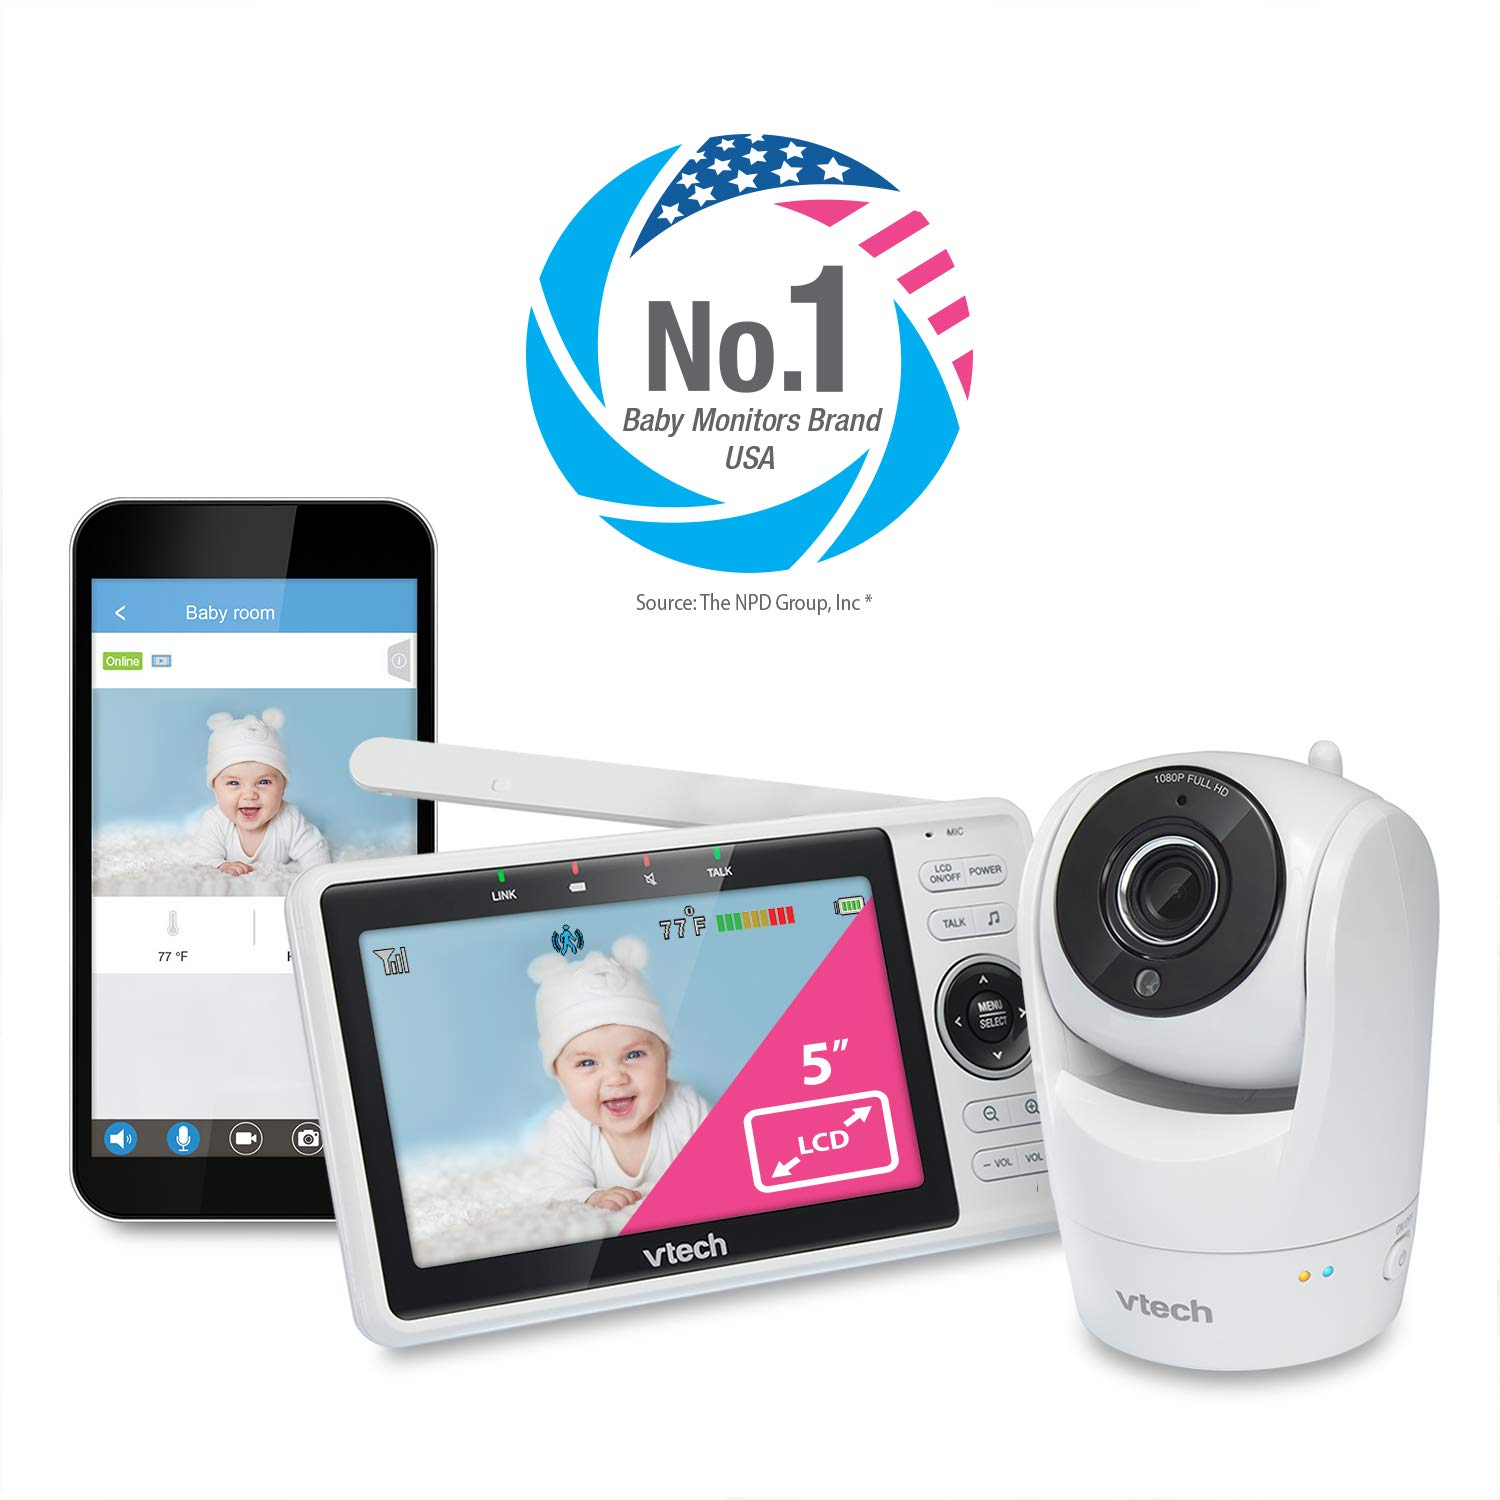 """VTech VM901 WiFi Video Baby Monitor with Free Live Remote Access, 1080p Full HD Camera, 5"""" Screen, Pan Tilt Zoom, HD Night Vision, 2-Way Audio Talk"""